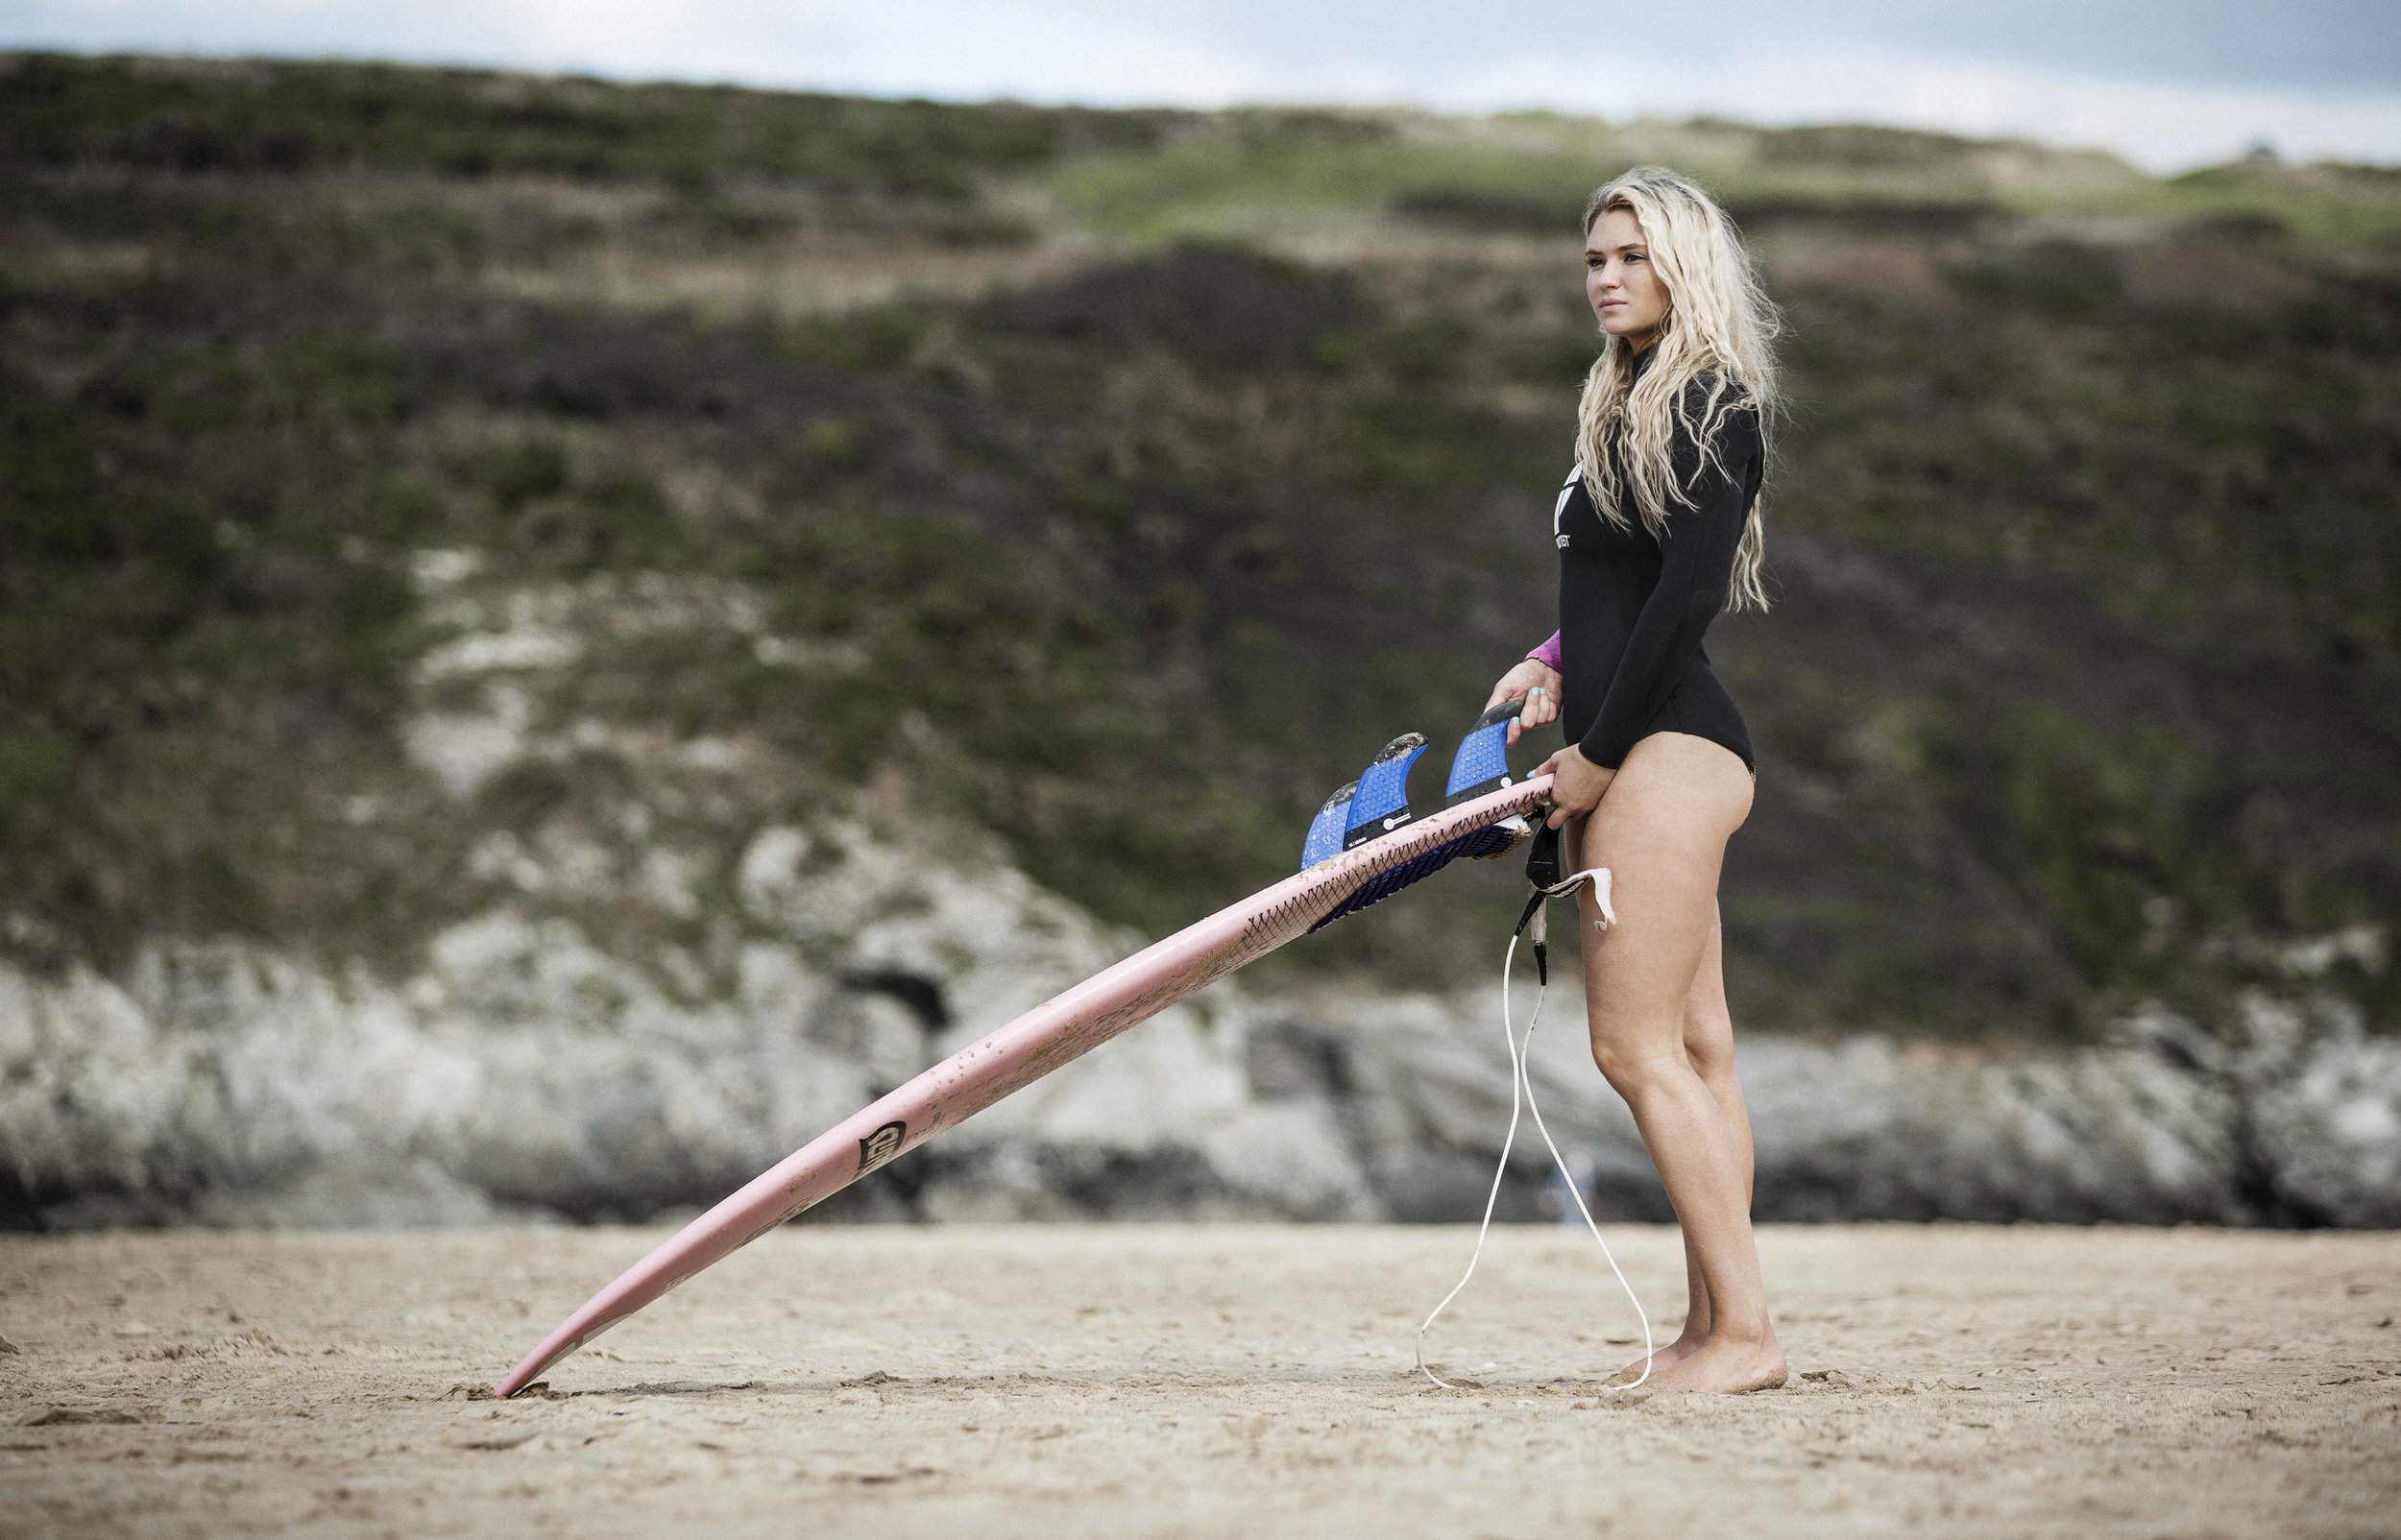 Lucie with surfboard